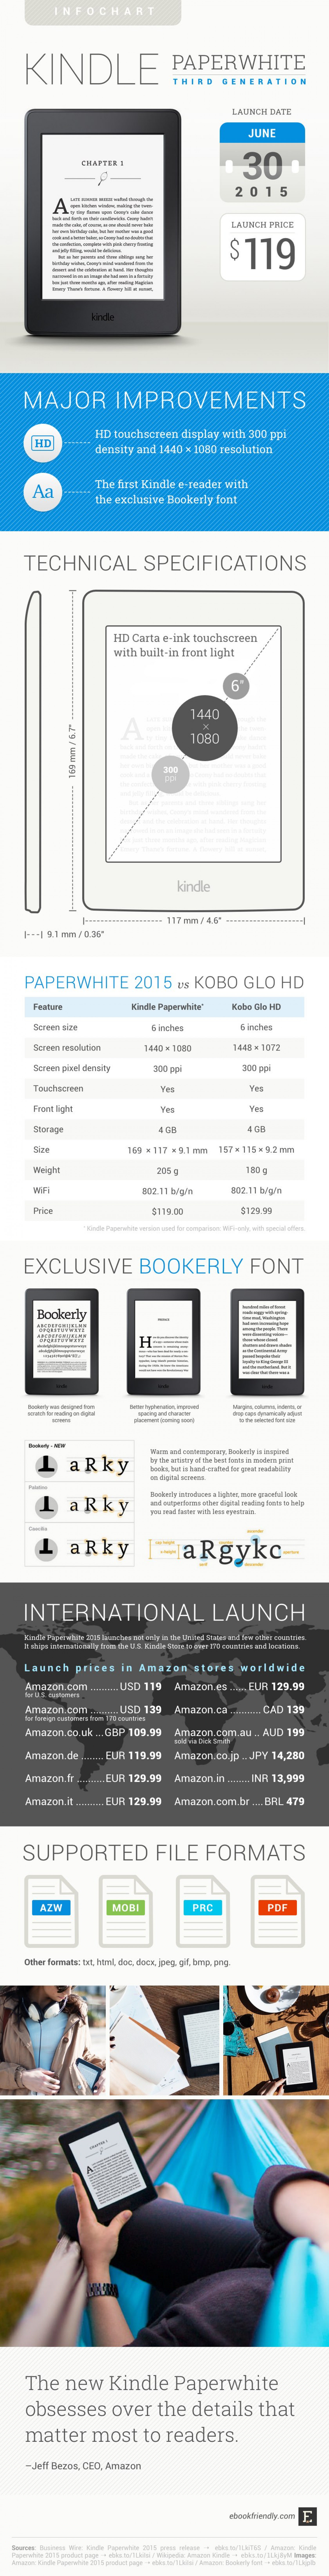 Kindle Paperwhite 2015 : everything you need to know Infographic